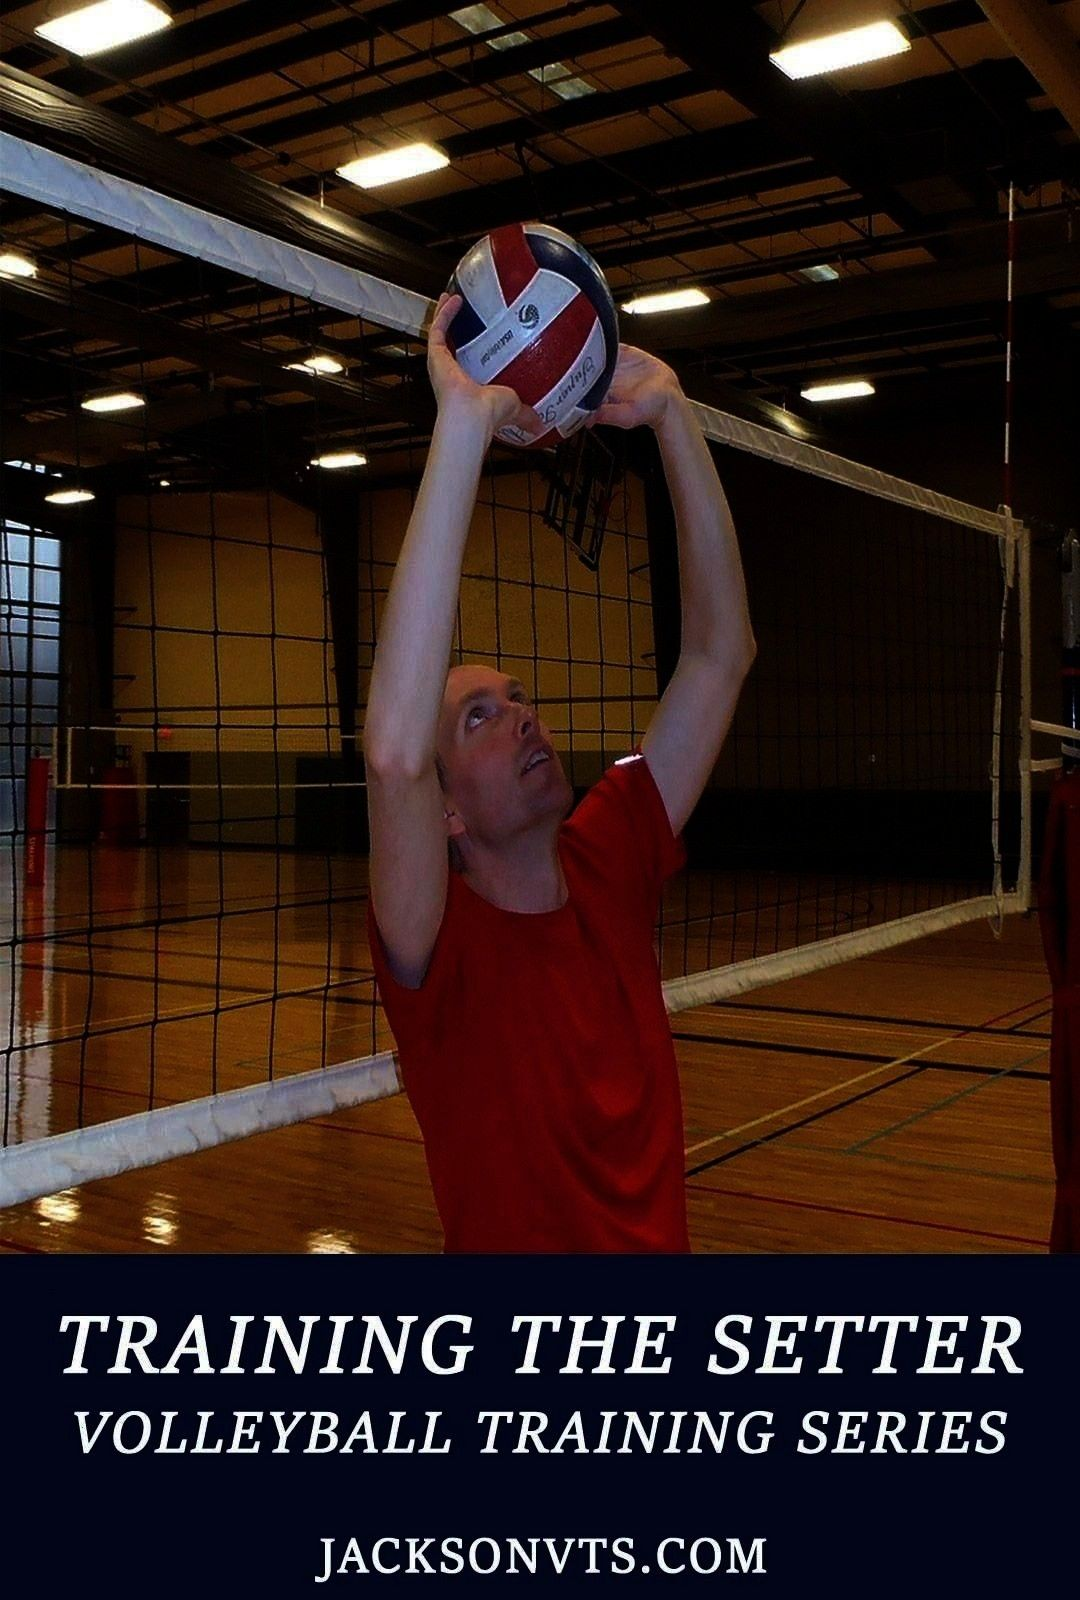 Fvolleyball Volleyball Fsetting Setting Usually Involve Coaches Fdrills Drills Balls From Toss Or A Dus Volleyball Set Setting Drills Volleyball